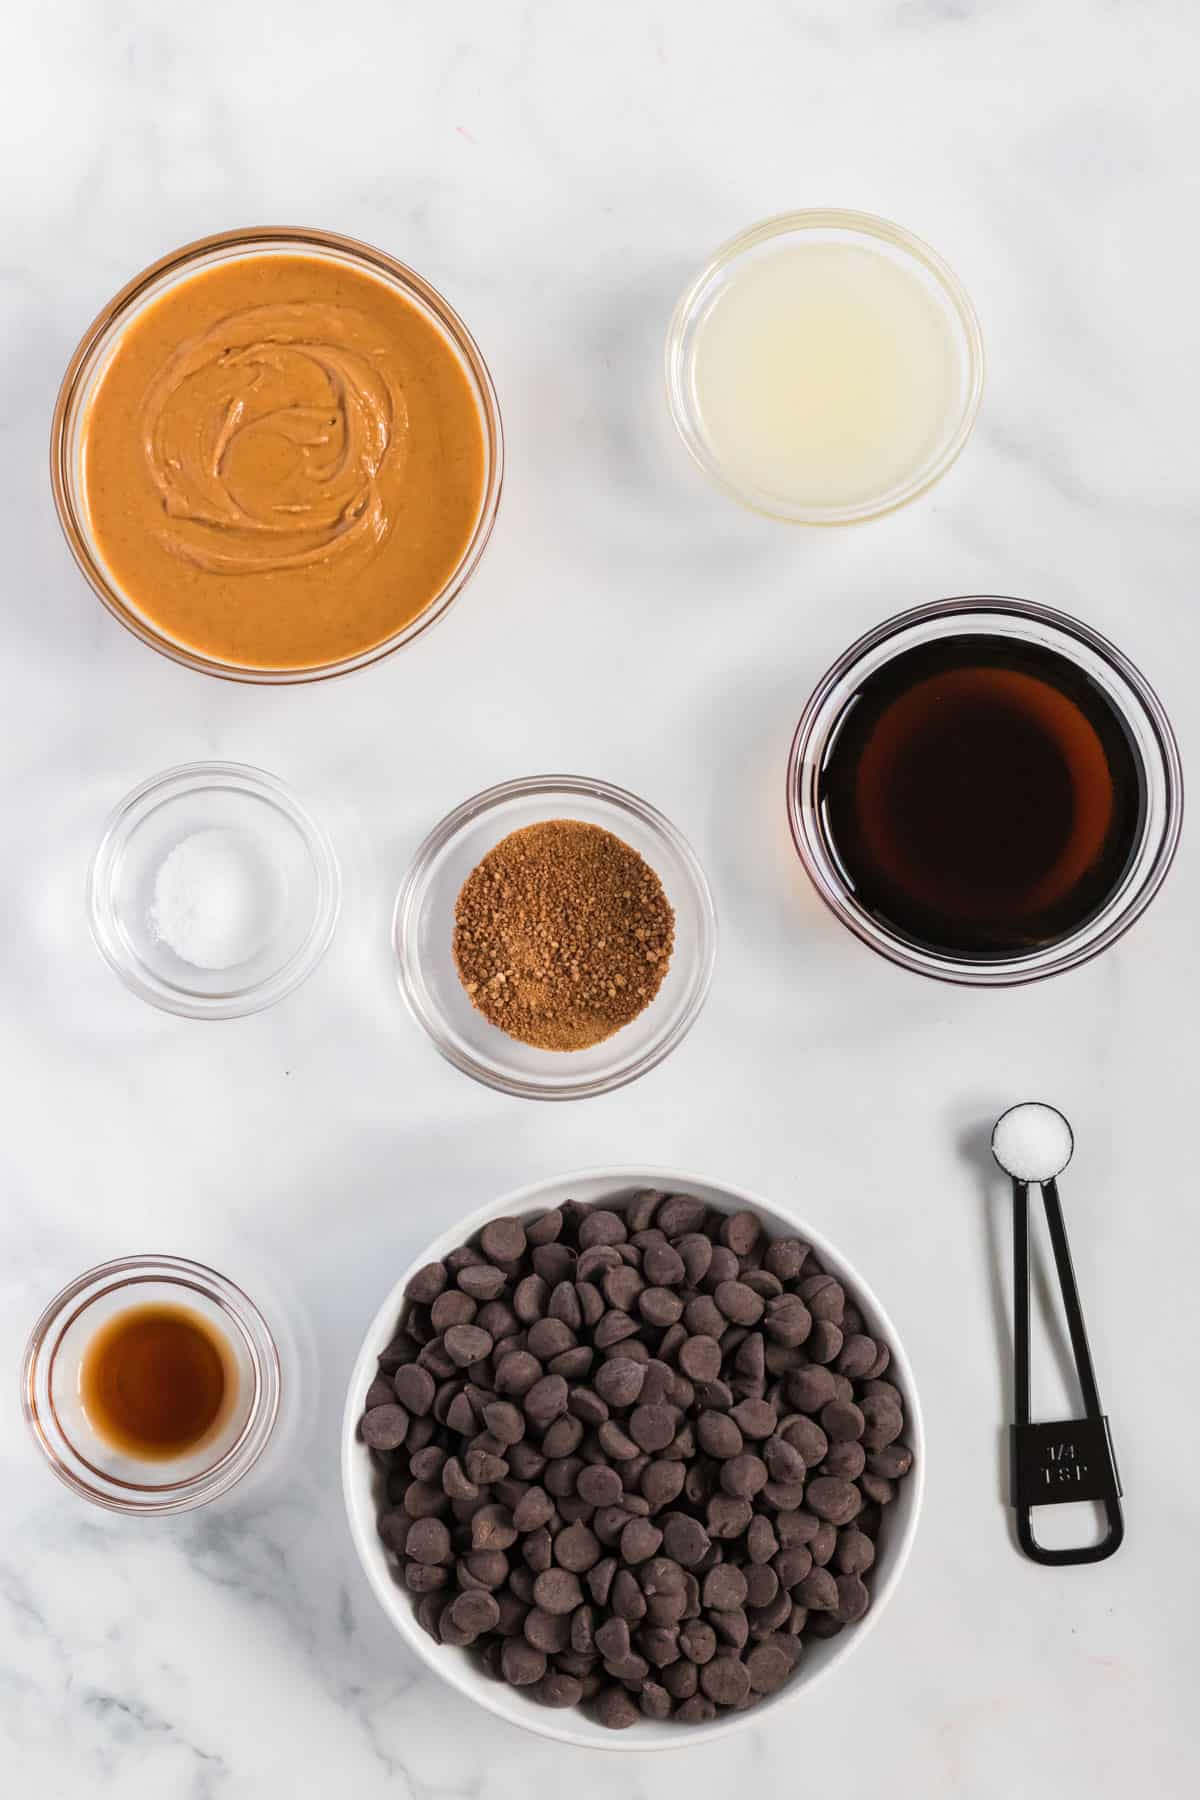 peanut butter cup ingredients